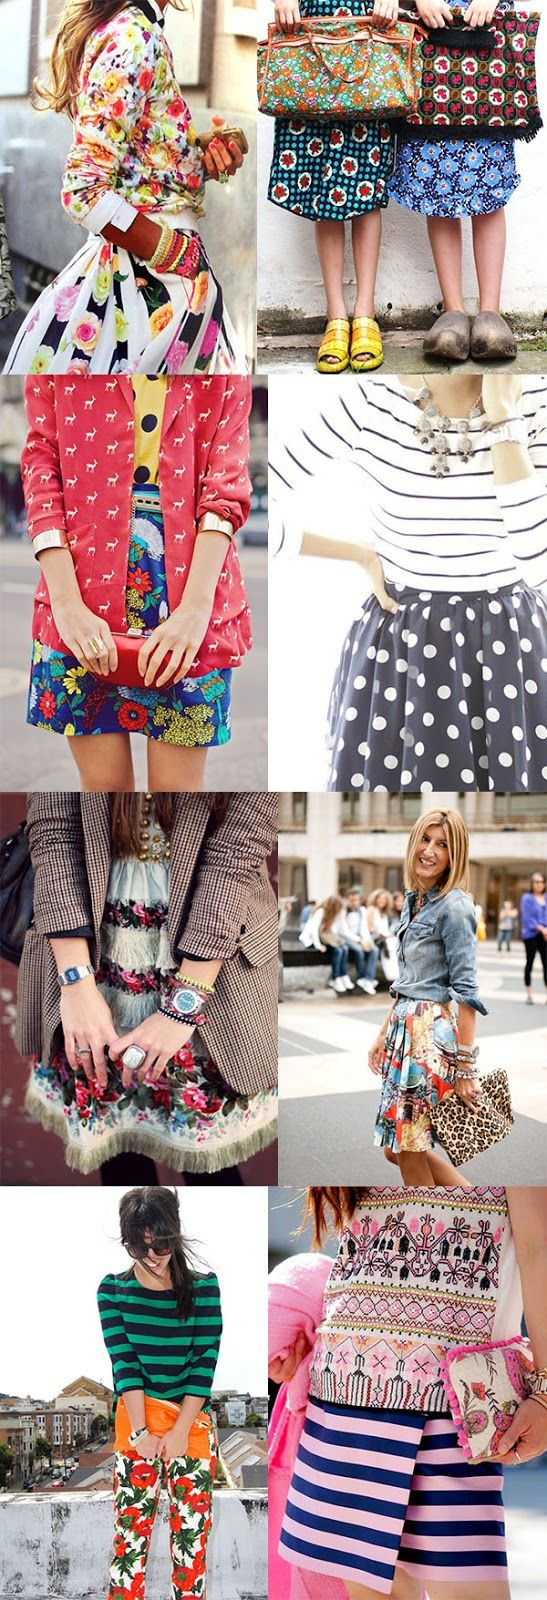 Mixing and matching floral patterns is our new favorite fall fashion trend…